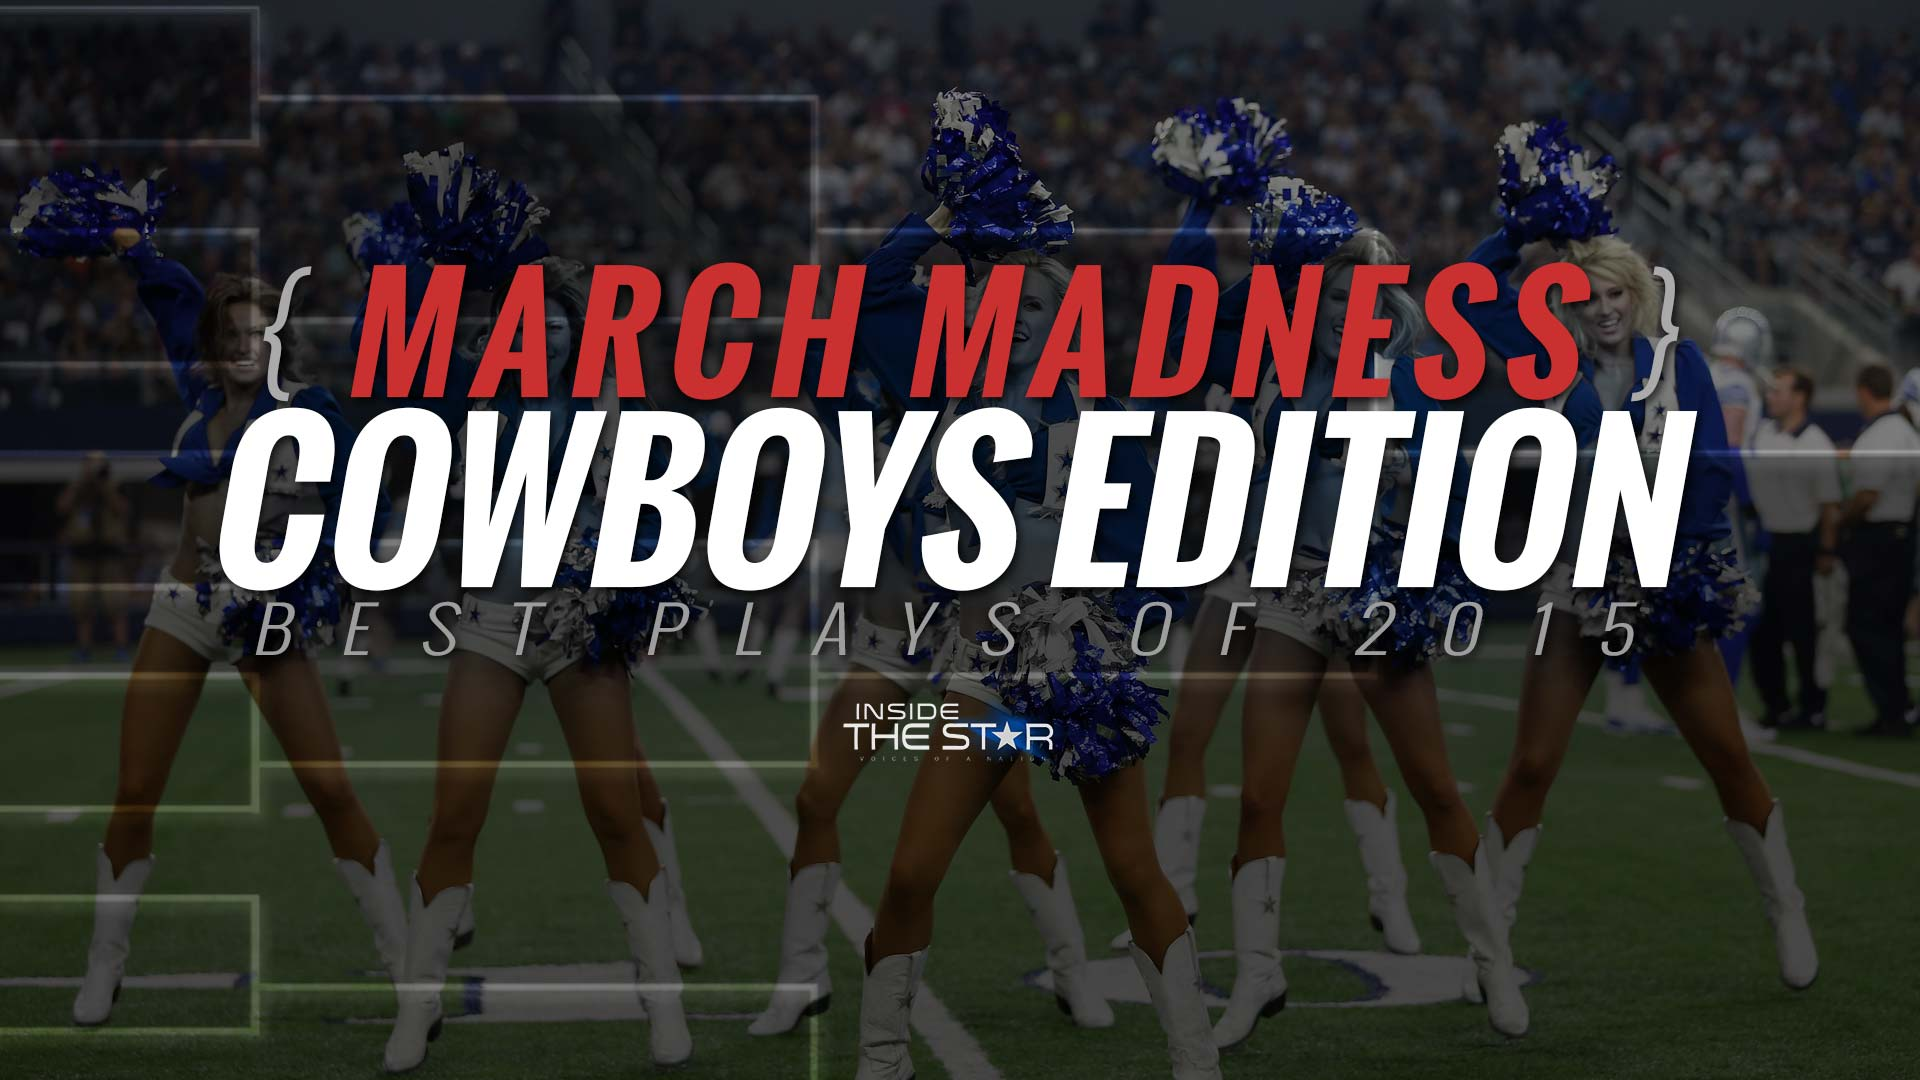 The Star News - March Madness: Cowboys Edition, Elite Eight